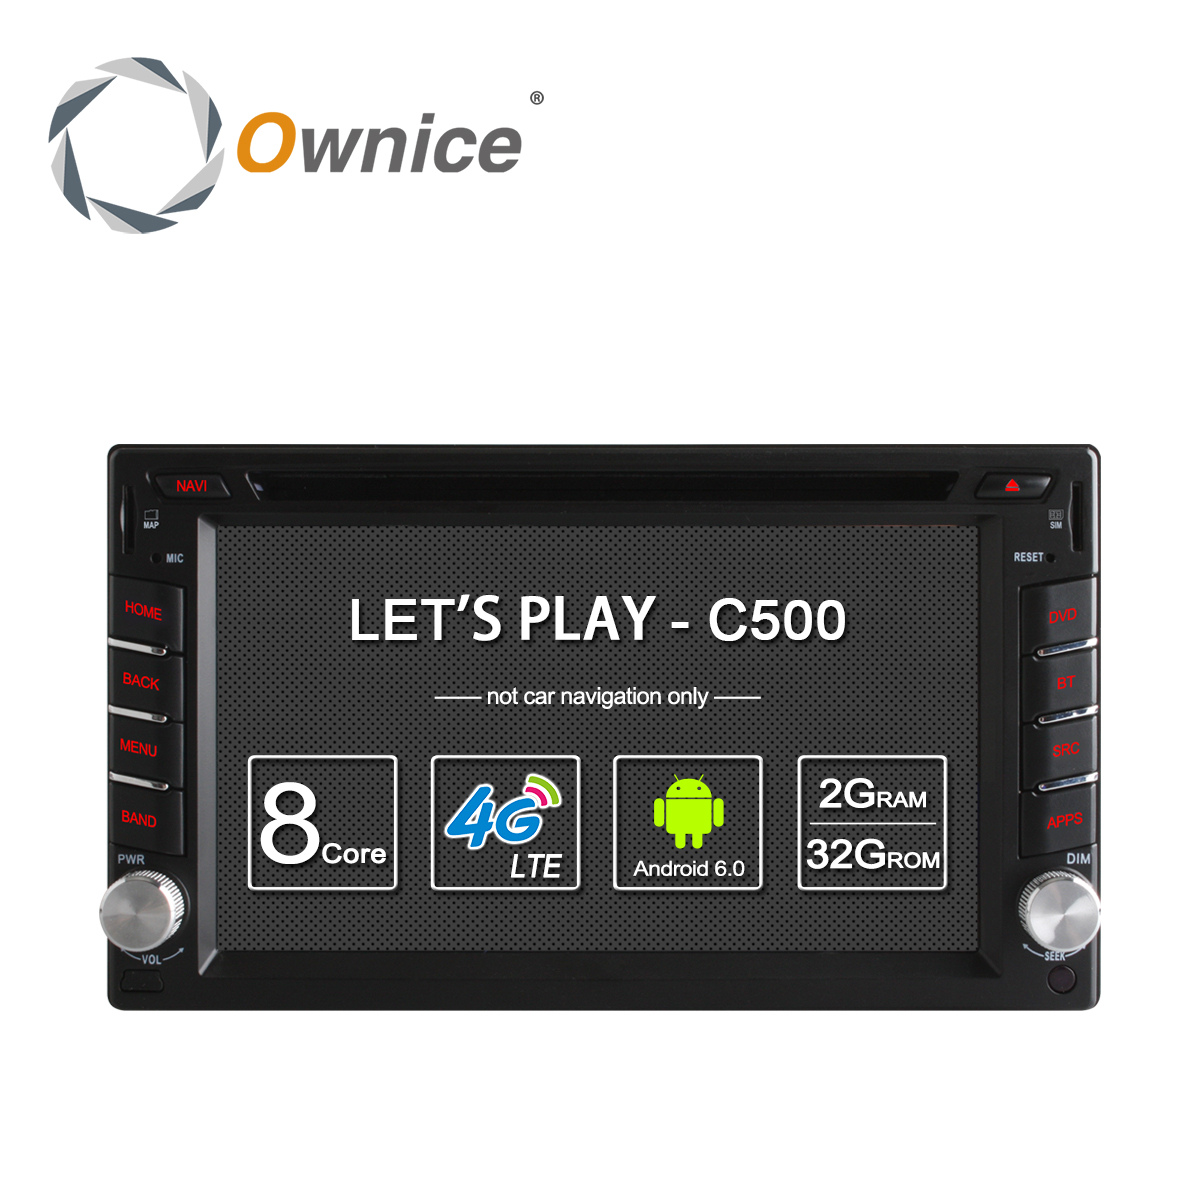 imágenes para Ownice C500 Universal 2 din Android 6.0 Octa 8 Core Coches reproductor de DVD GPS Wifi BT Radio BT 2 GB RAM 32 GB ROM 4G SIM de la Red LTE